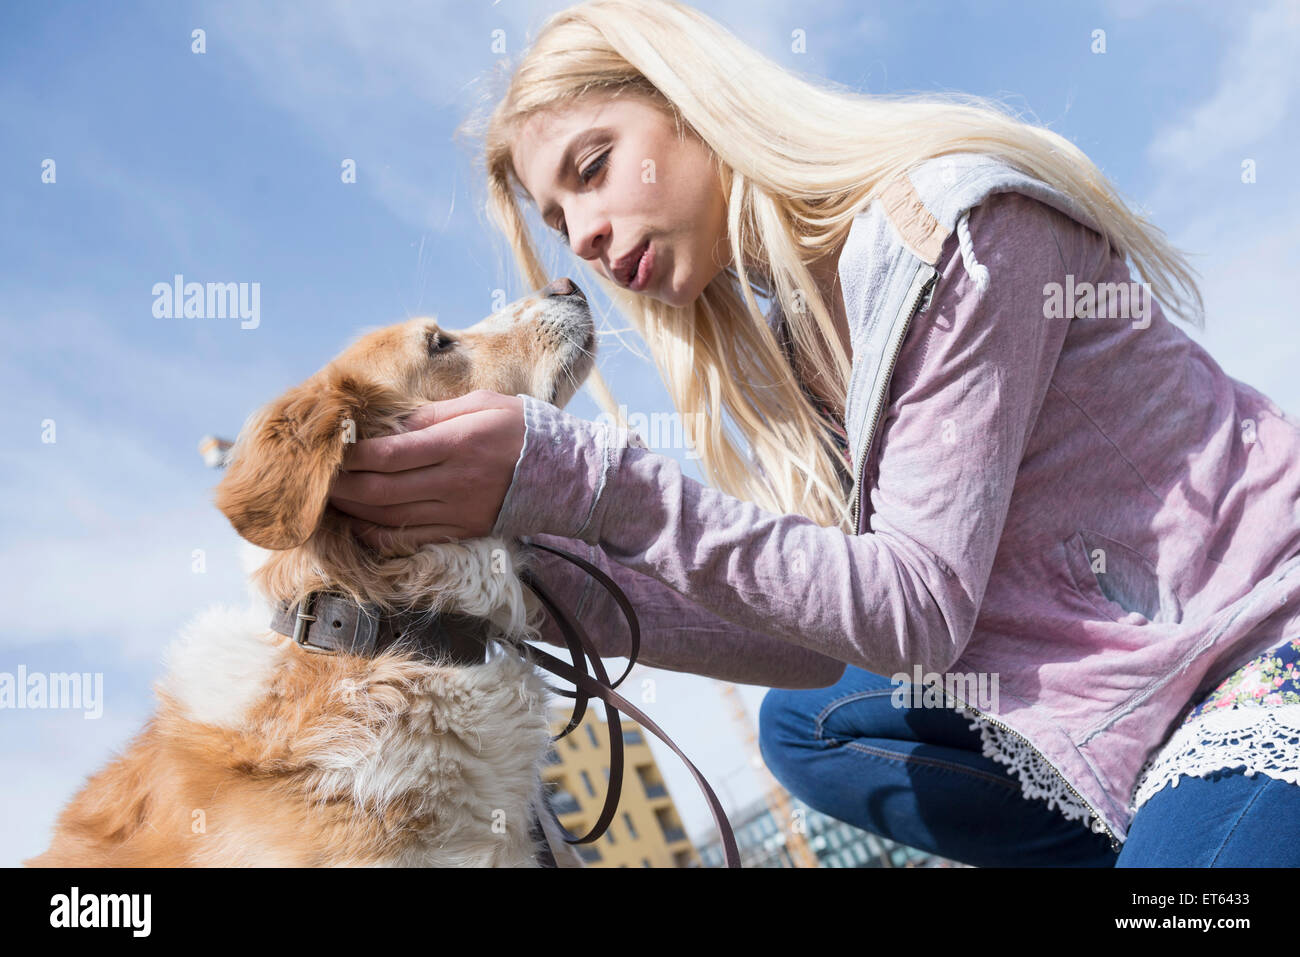 Low angle view of teenage girl kissing her dog, Munich, Bavaria, Germany - Stock Image